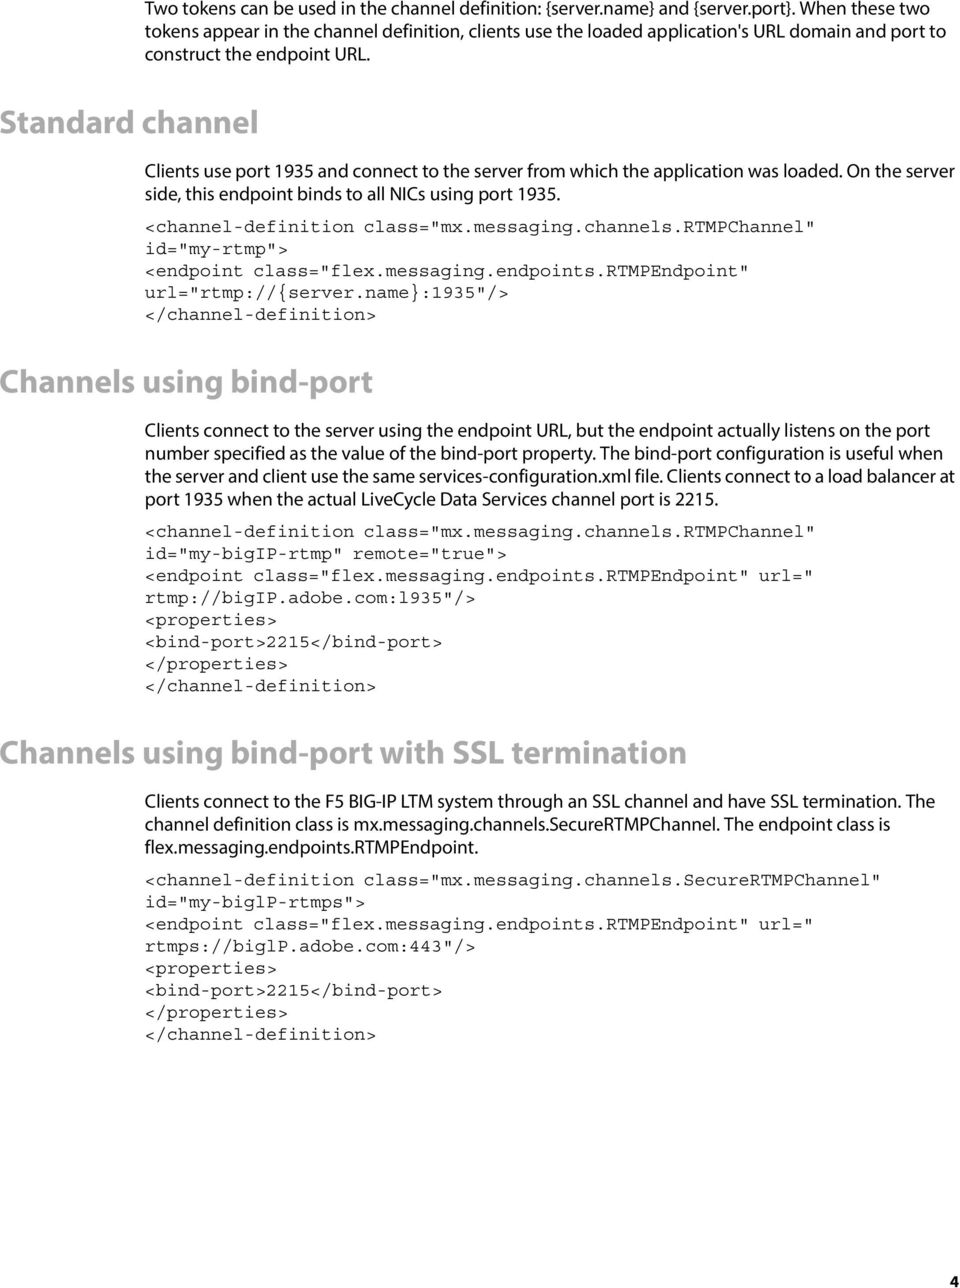 Standard channel Clients use port 1935 and connect to the server from which the application was loaded. On the server side, this endpoint binds to all NICs using port 1935.